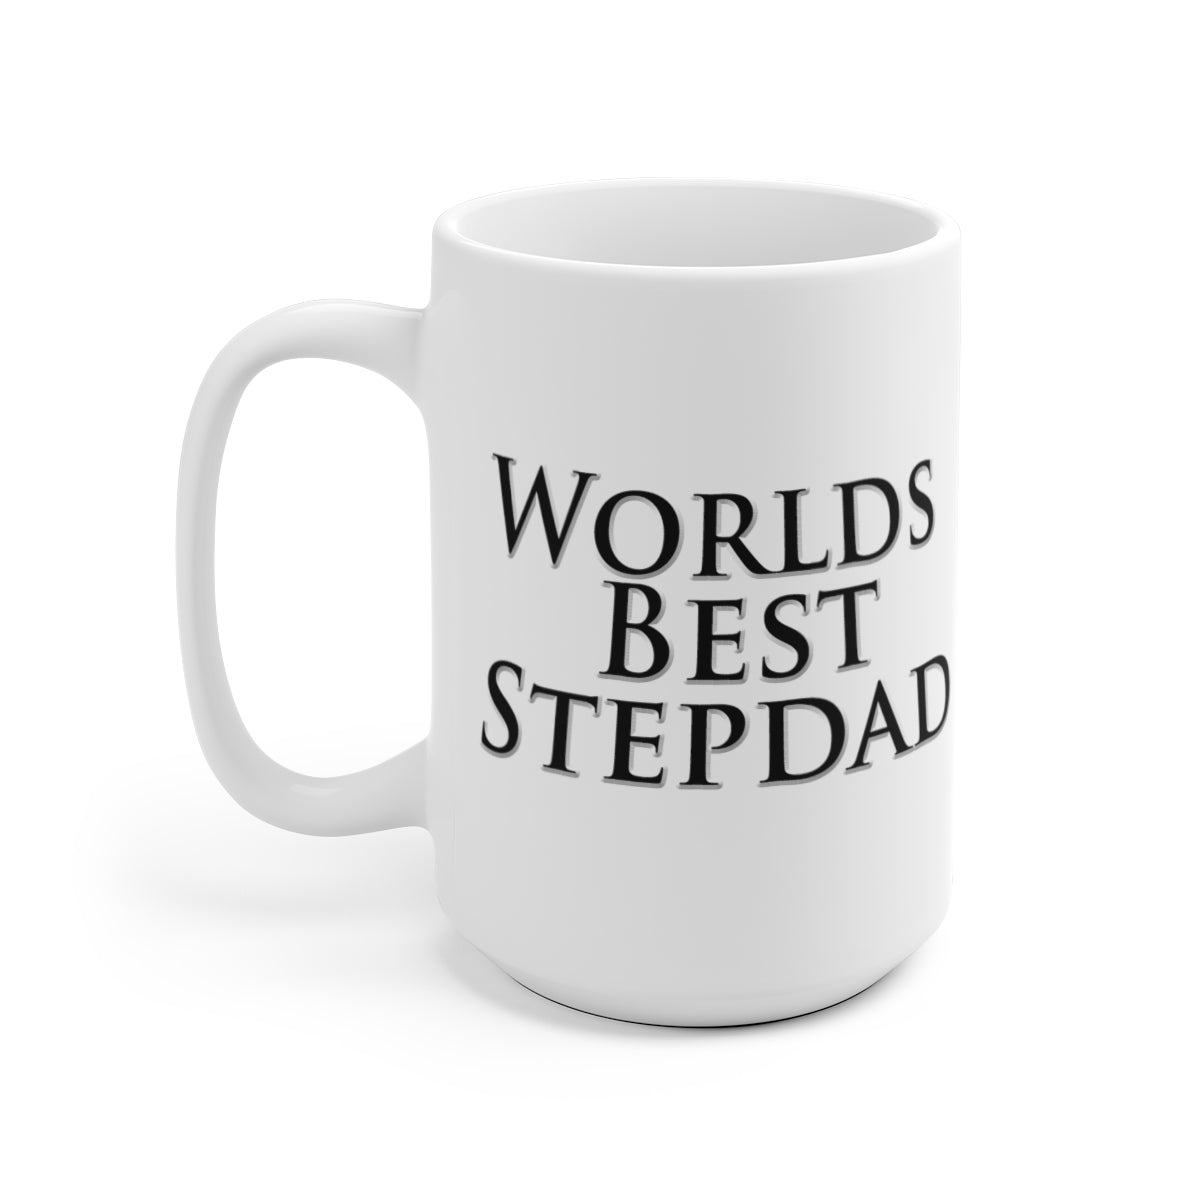 Worlds Best Step Dad Coffee Mug Fathers Day Gift by Reefmonkey